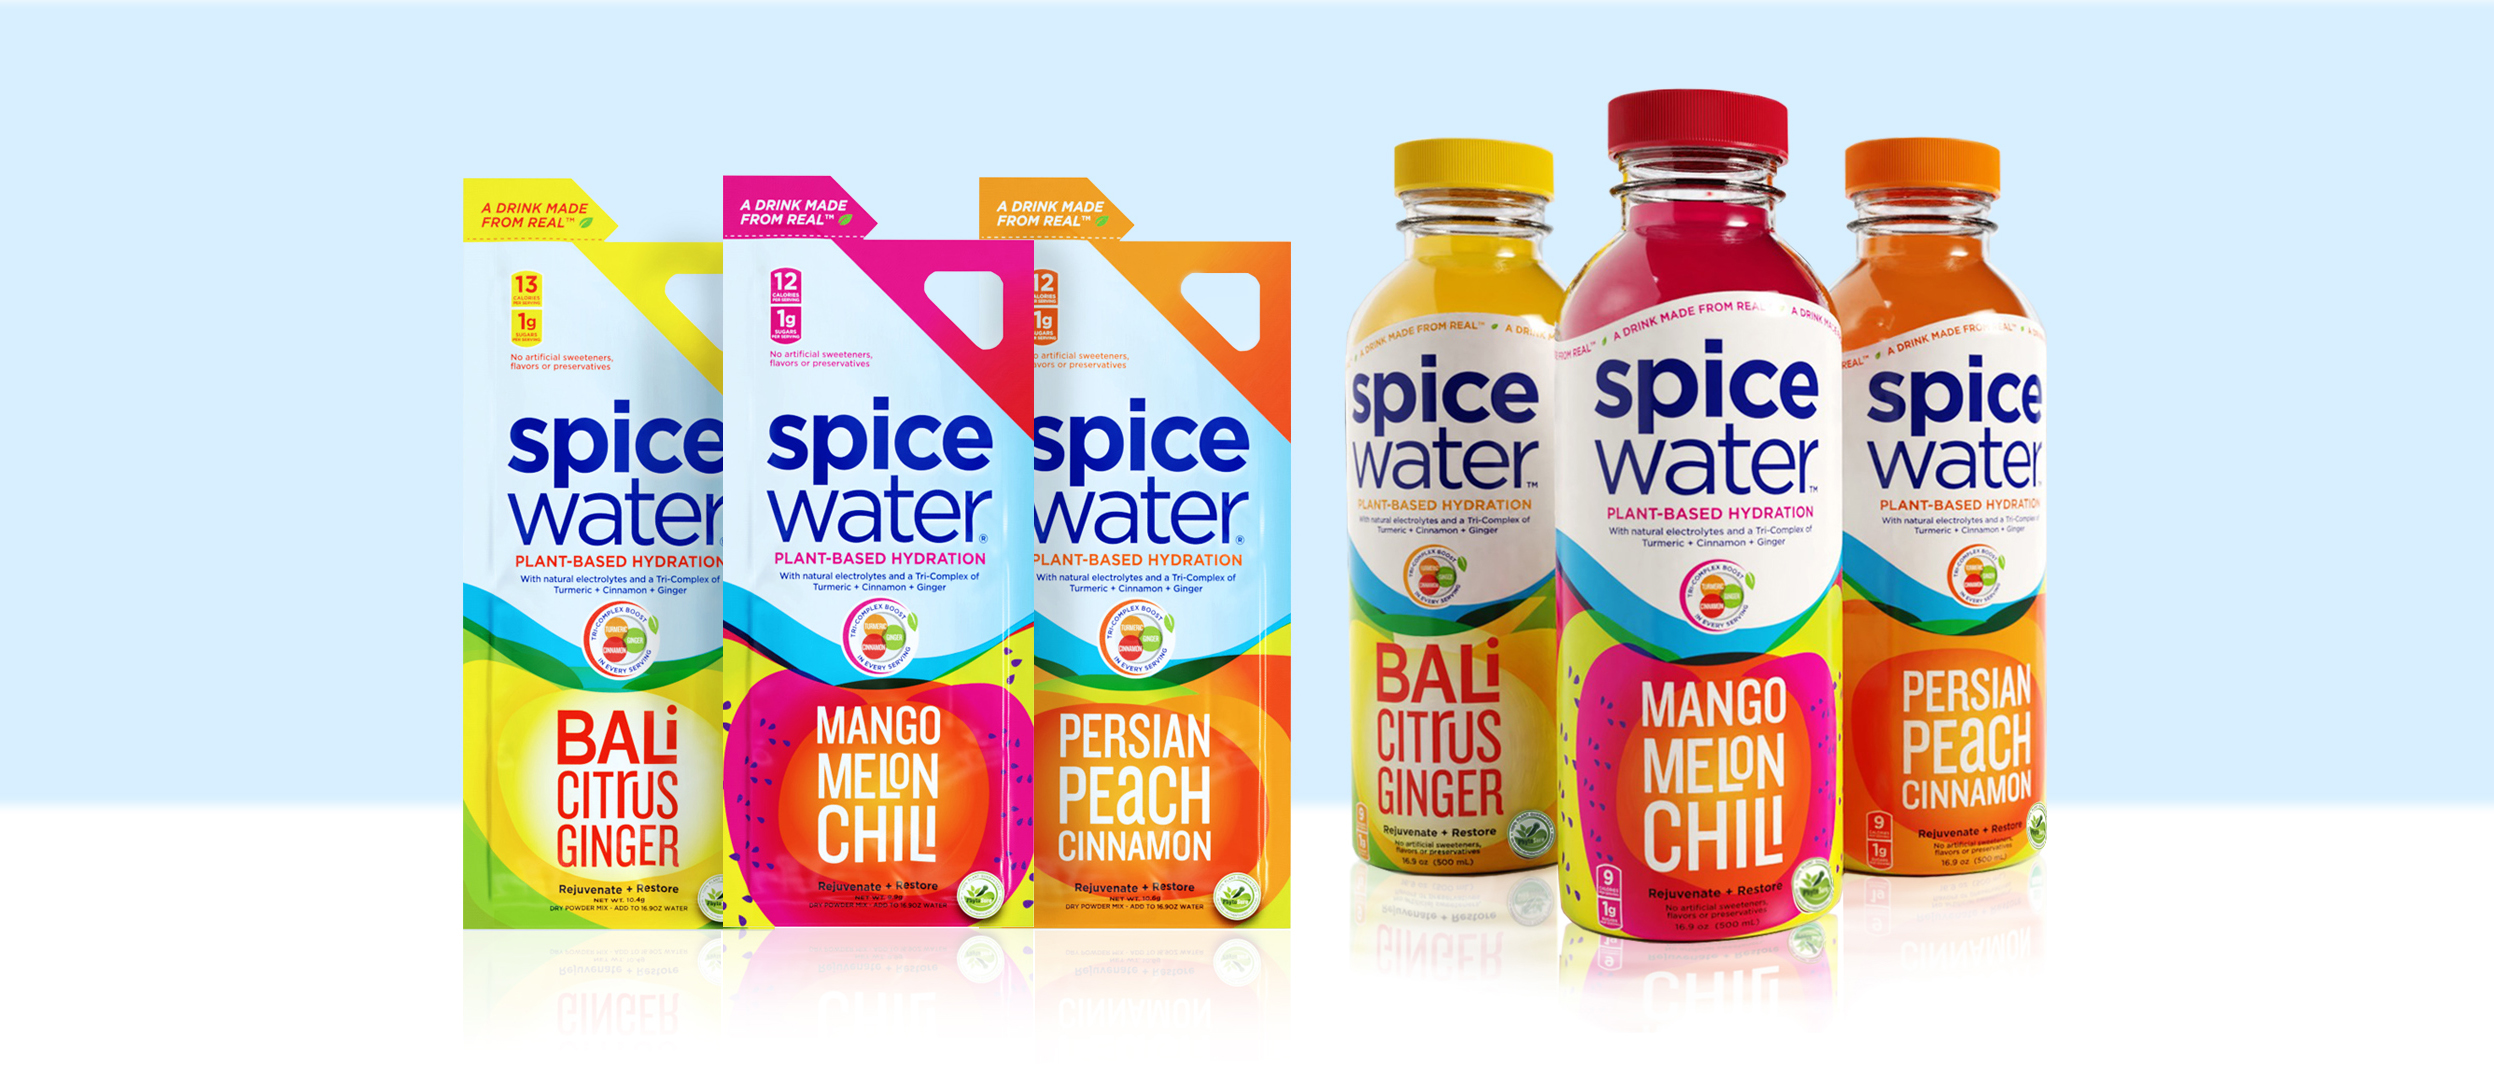 Spice Water bottles and packets 2.jpg